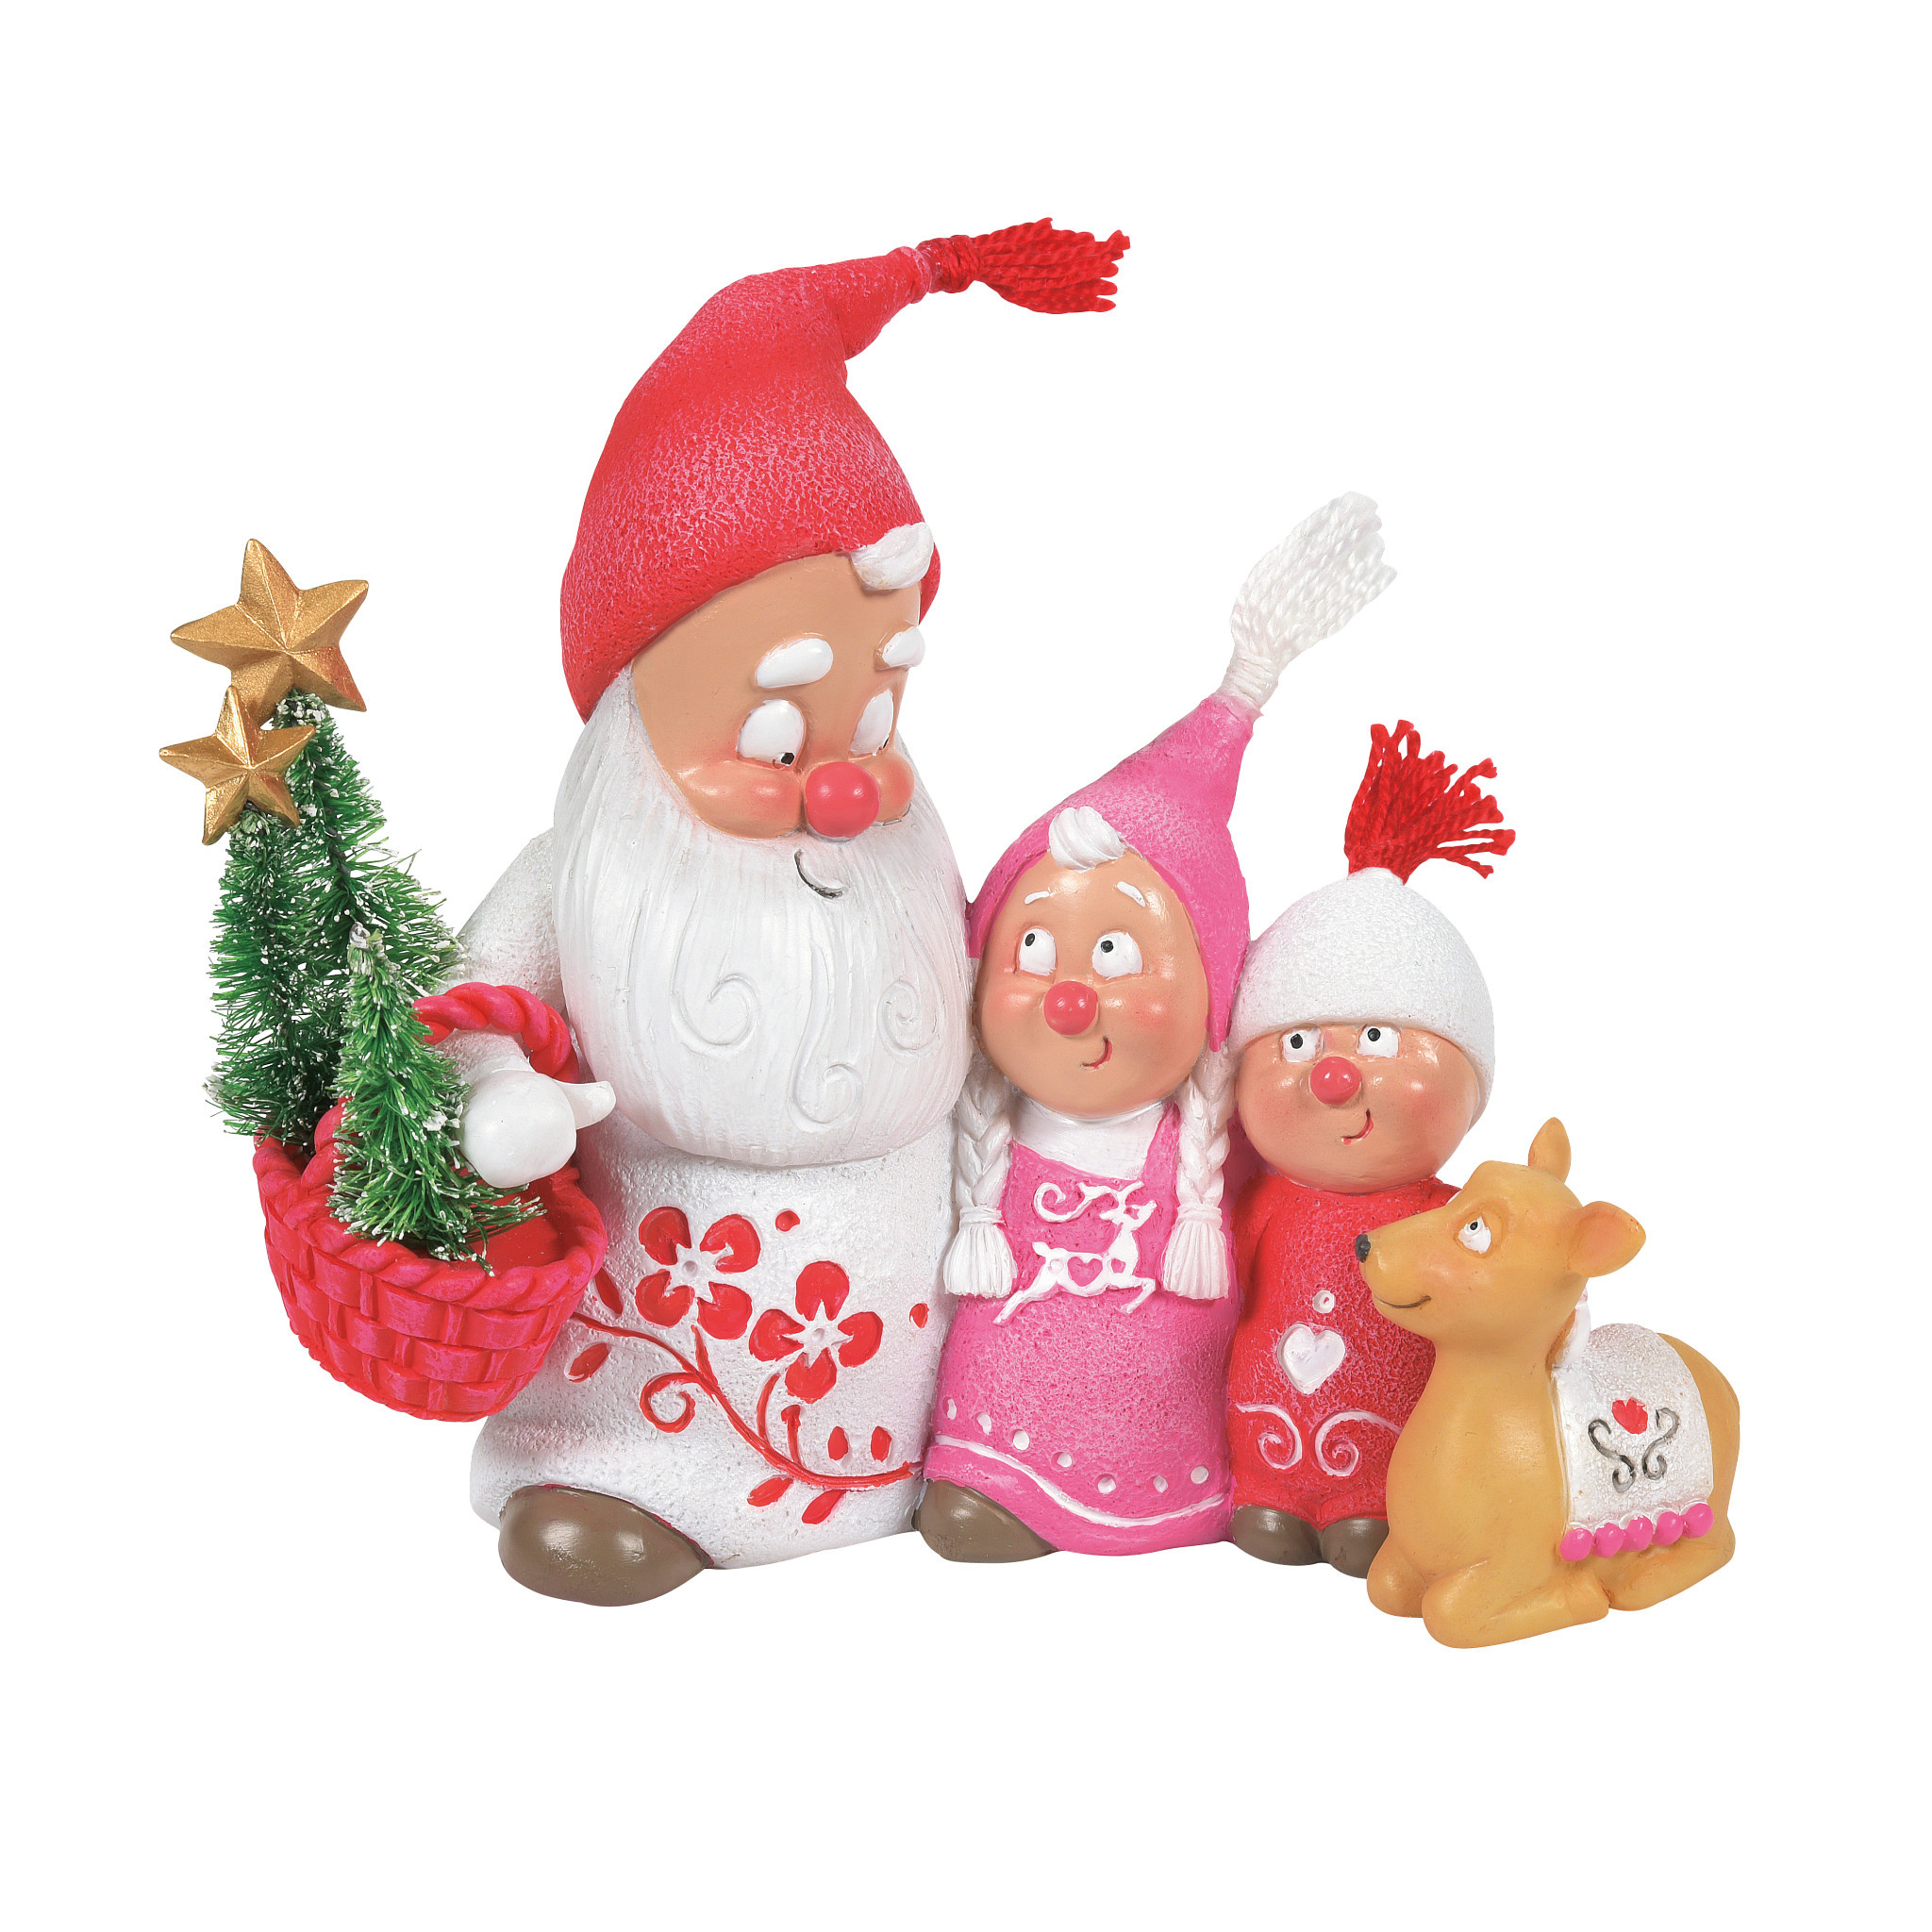 Department 56 ® - Figurines 'Snow Gnome Family N' 2021